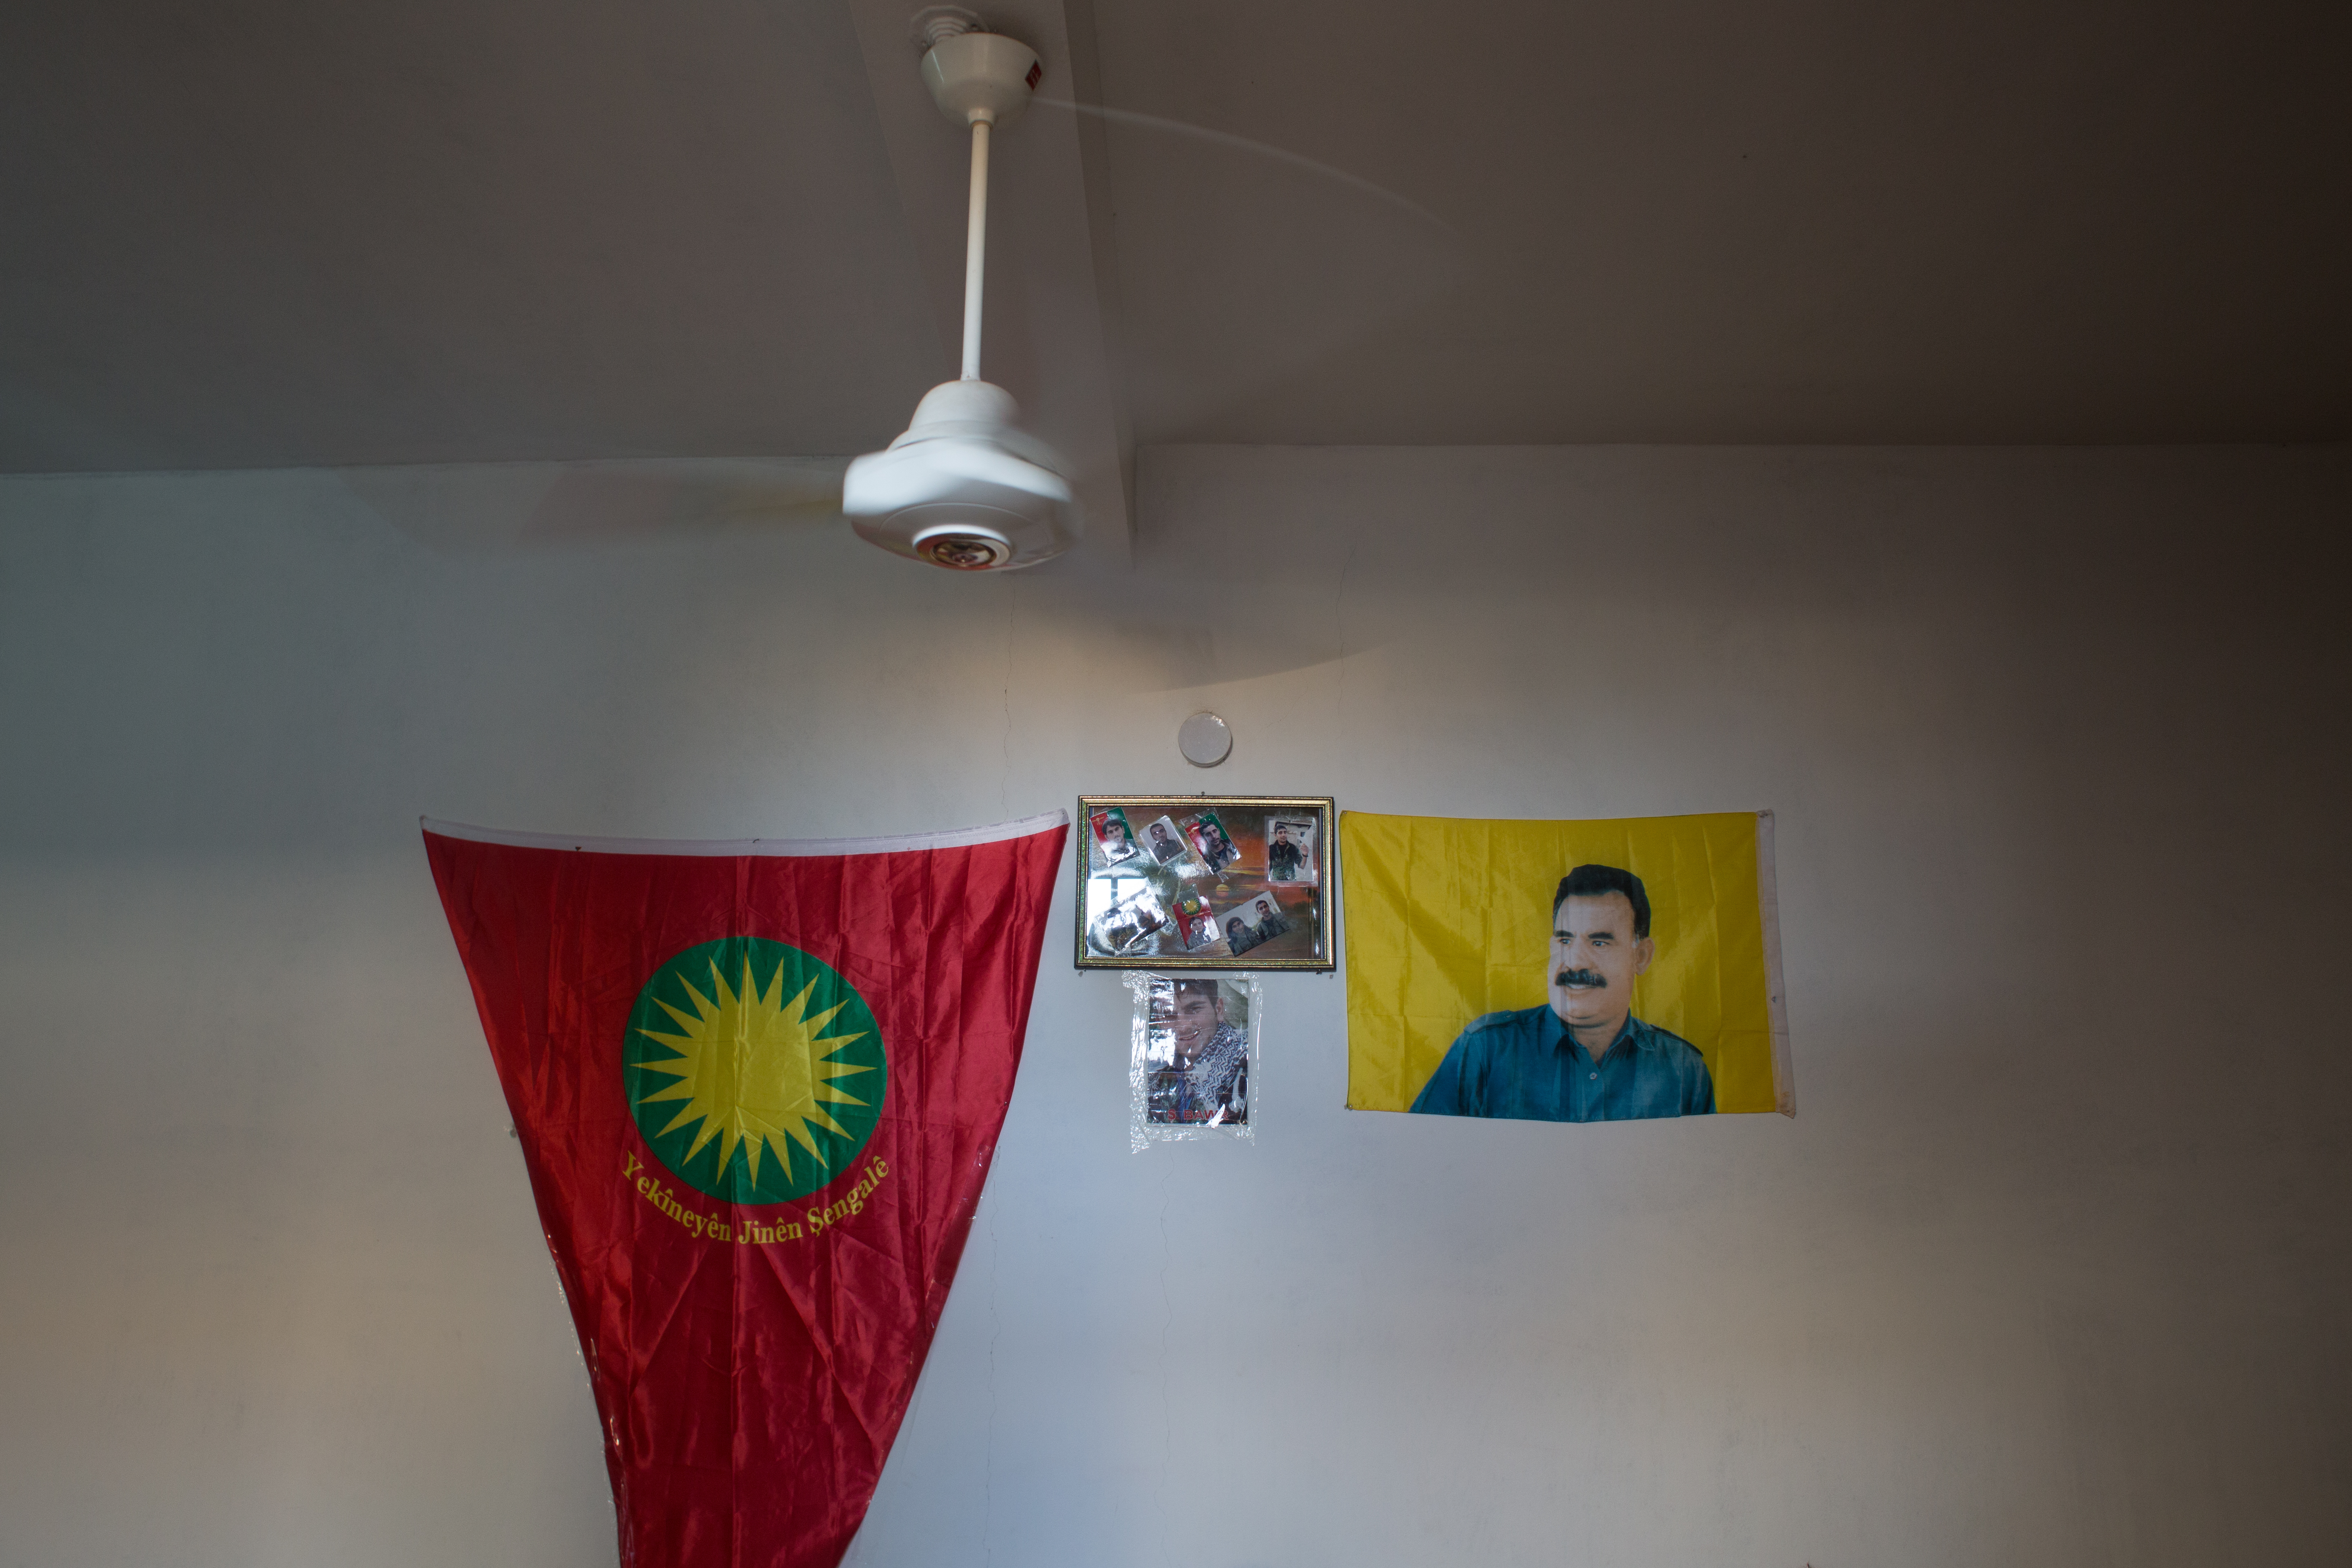 In all of Rojava's public buildings images of the Kurdish sun and Ocalan, one of the PKK's founders, are omnipresent.